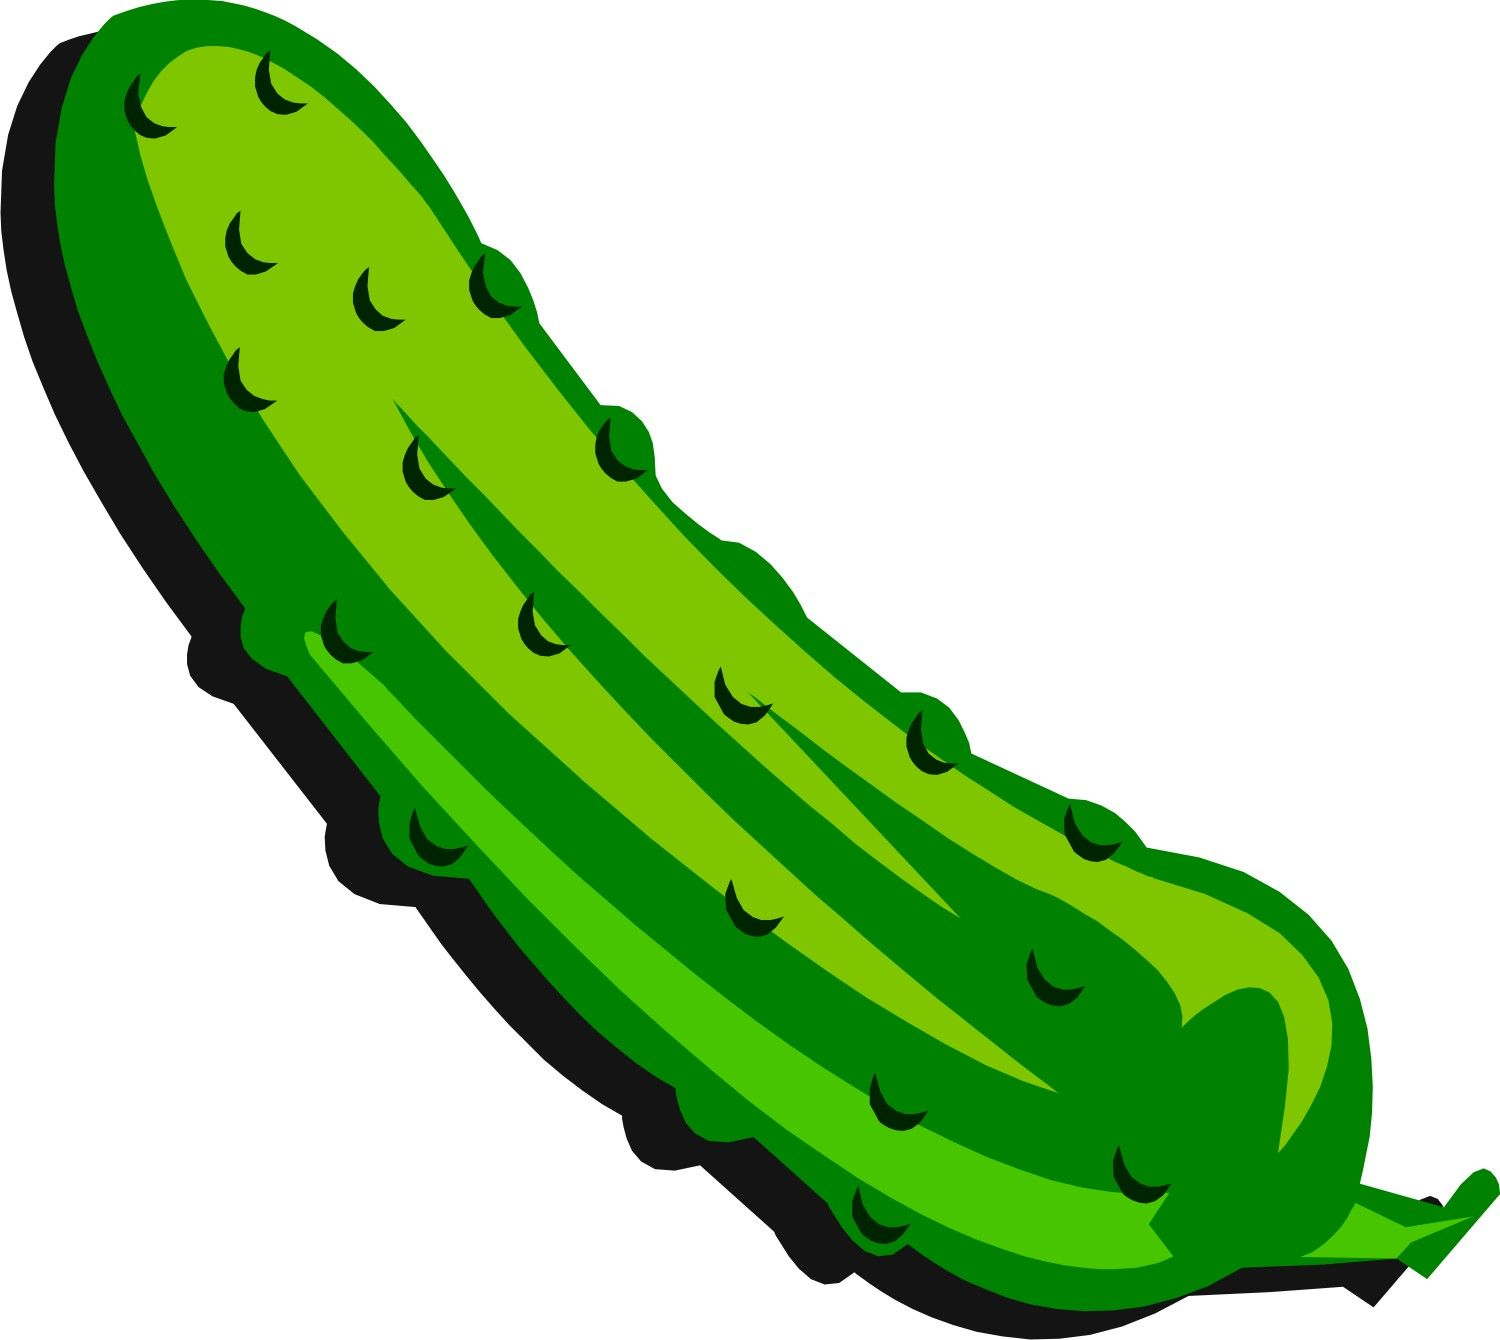 pickle.